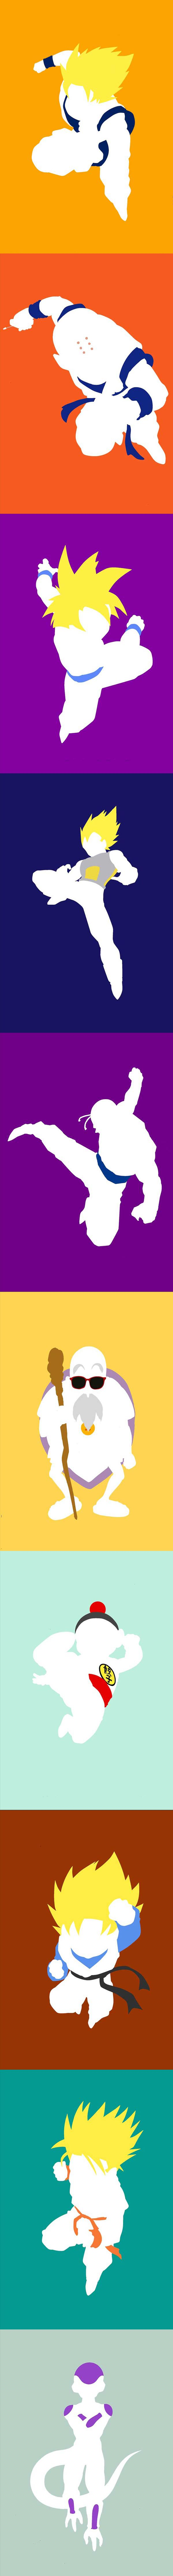 Dragon Ball Z Minimalist Posterswonder if i can print theses and modge podge…